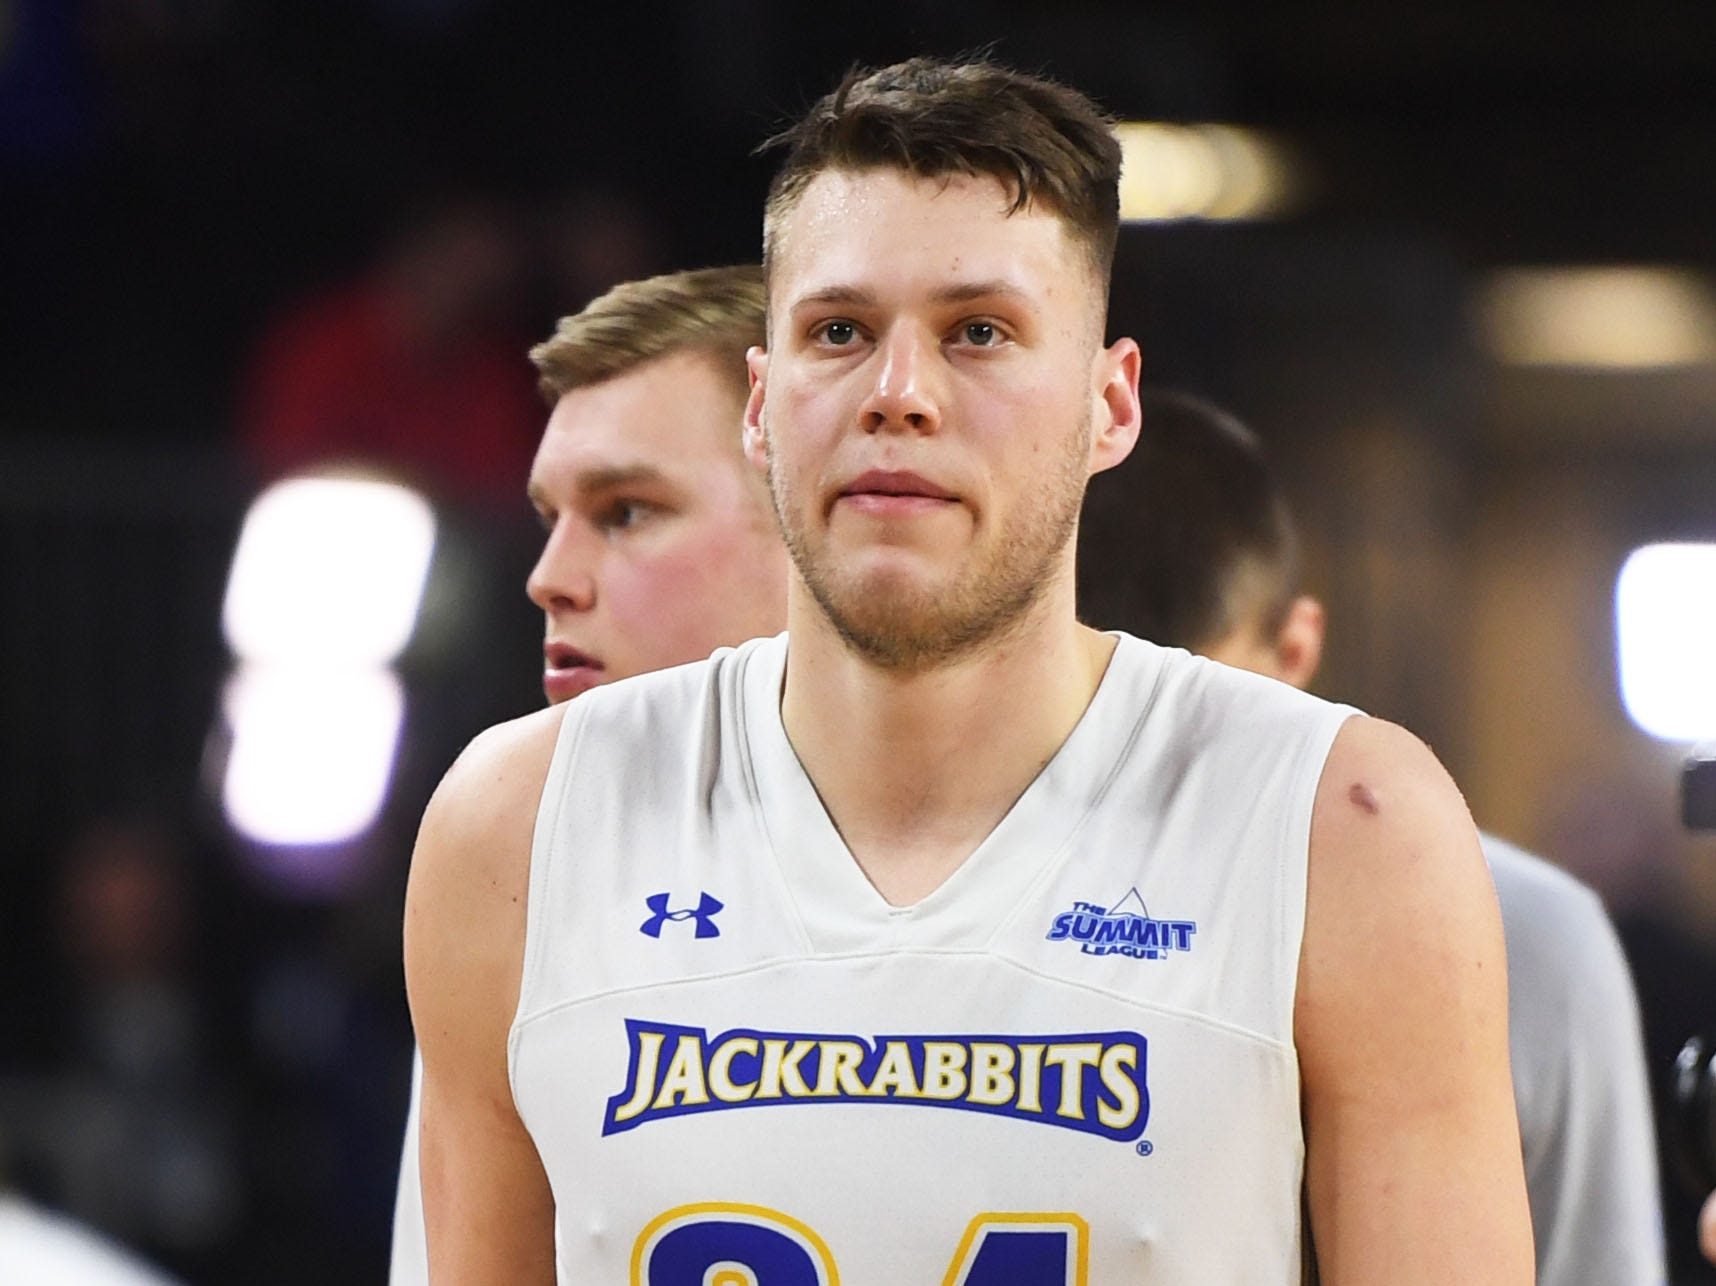 SDSU's Mike Daum walks off the court after the lose against Western Illinois Saturday, March 9, in the Summit League tournament at the Denny Sanford Premier Center in Sioux Falls. Western Illinois won 79-76.